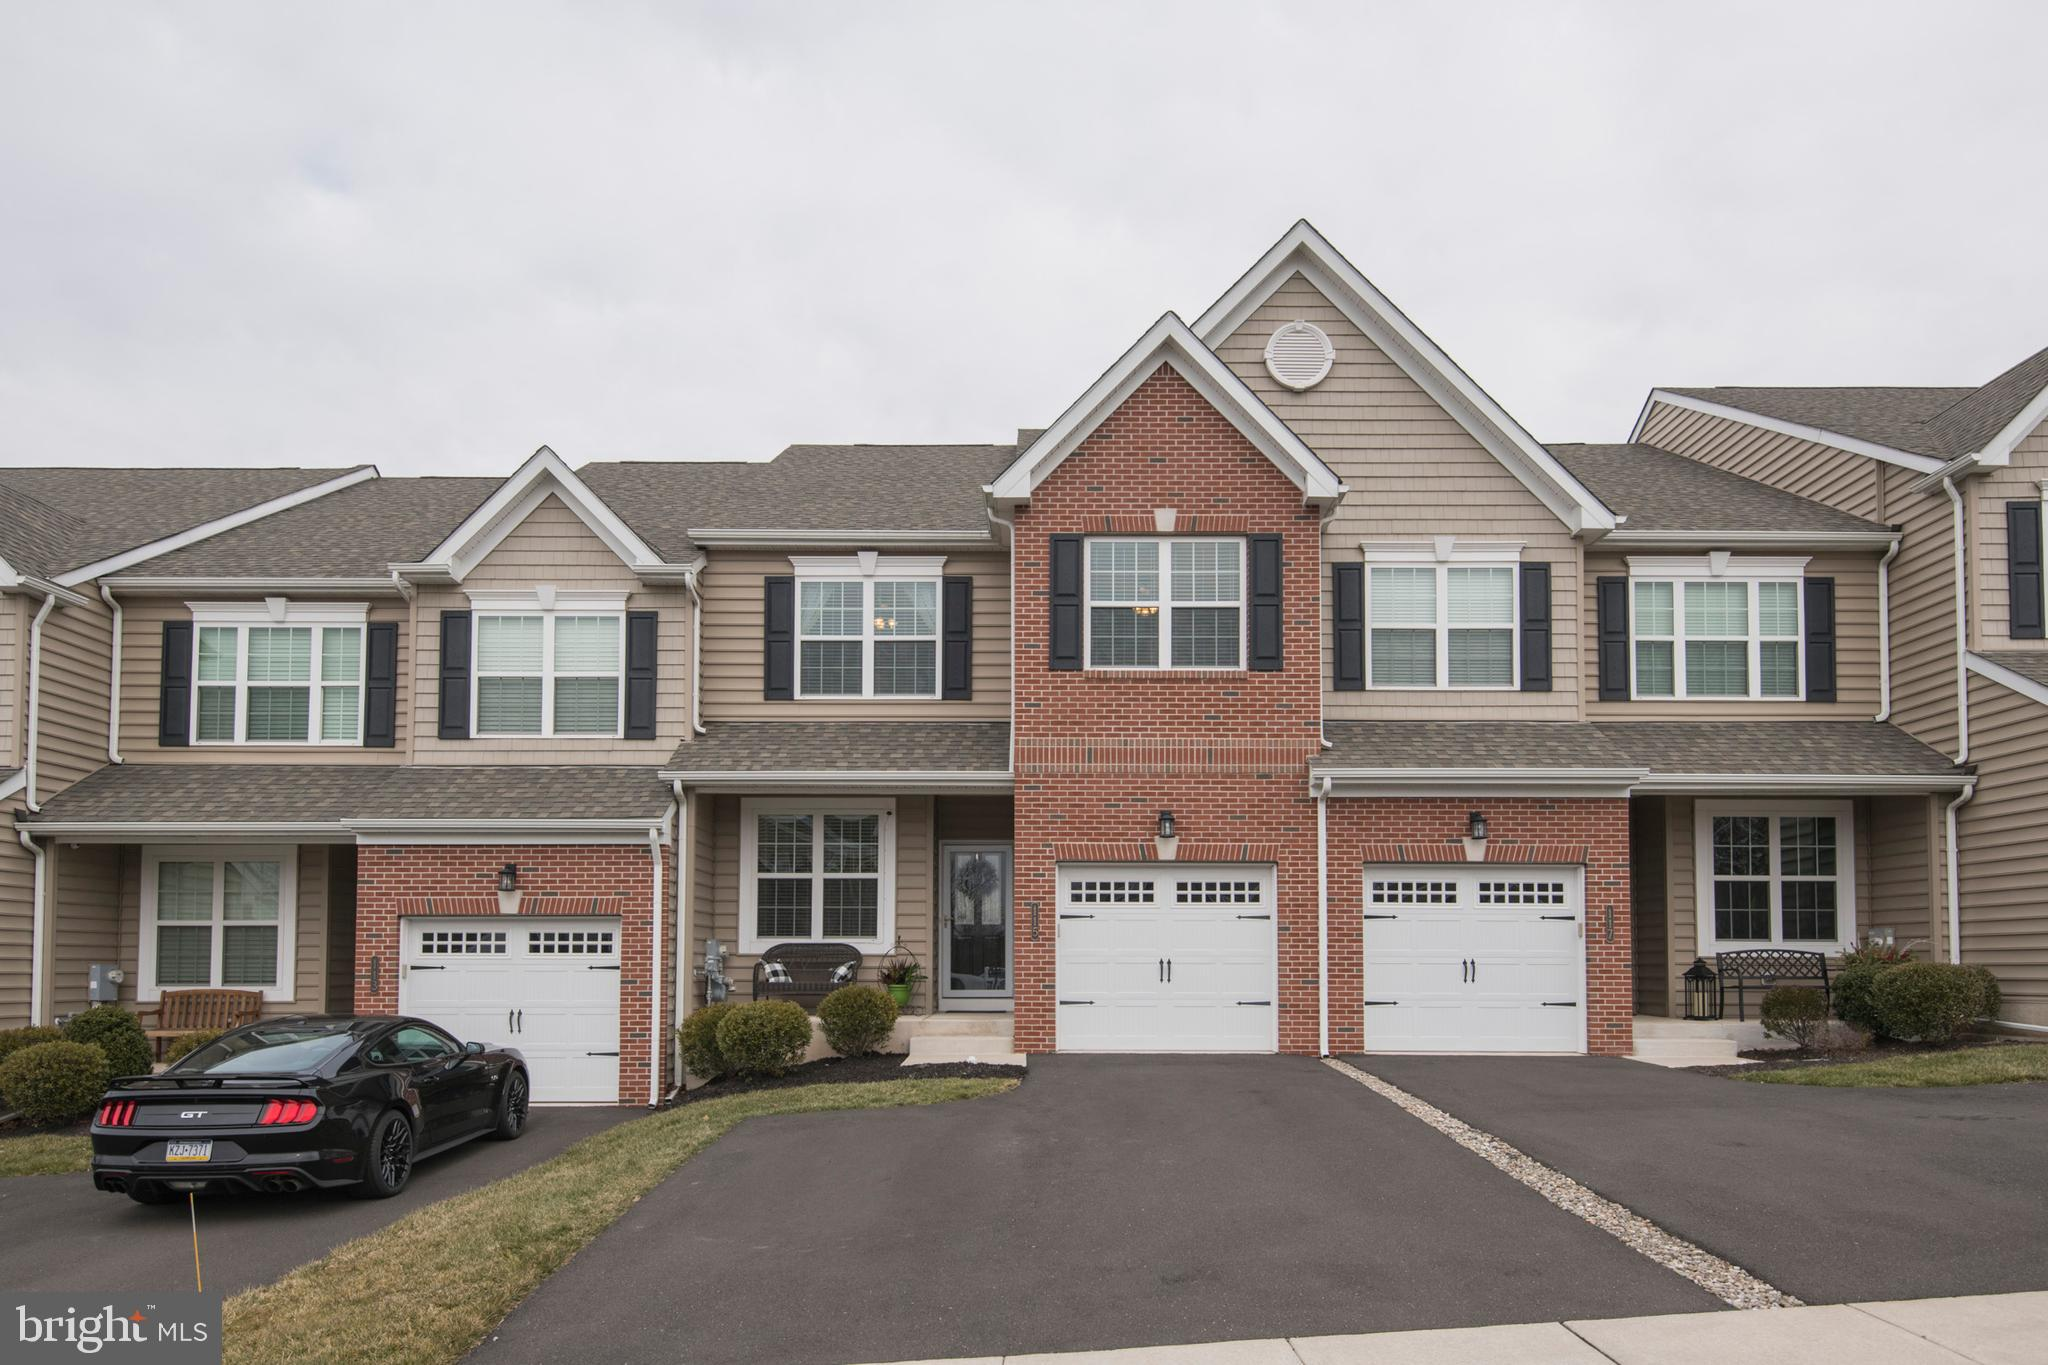 Looking for that one property that is move-in ready that offers you immediate joy and comfort? This attractive and meticulously maintained townhouse is only 4-years old and is a prized find. Act now to be the next owner of this spacious 2,500+ sq ft property with newer amenities and 9 ft ceilings on both floors. Plus, it features lots of todays in demand space including a first-floor study that offers a quiet area for working from home or virtual studies, an owners suite with dressing area, walk in closet and private bath, a partially finished basement, and a 12 ft x 12 ft deck perfect for relaxing and entertaining. From the moment you arrive you will be charmed by the curb appeal with covered front porch. The interior only gets better! Enter into the front entry foyer that gives access to the garage, study with French doors, coat closet, and powder room with pedestal sink and glass tile. The open concept floor plan offers a spacious kitchen with island featuring pendant lighting and extra seating, pantry, recessed lighting, granite counters, Travertine tile backsplash, gas cooking, and hardwood flooring. It is open to both the dining area and family room that is warmed by the stacked stone fireplace. The second floor is sure to please with convenient laundry room, owners suite with cathedral ceiling and recessed lighting, an owners bath with double bowl vanity, stall shower with seat, separate dressing area, and a large walk-in closet.  The two guest bedrooms with ample closets have access to the ceramic tile hall bath. One bedroom offers a 3 ft bump out that was only available in this Standbridge Elite Plan. The finished basement with egress window offers additional living and entertainment space. You will also get a high-efficiency gas heating system, sprinkler system, 200-amp electrical service, and so much more.